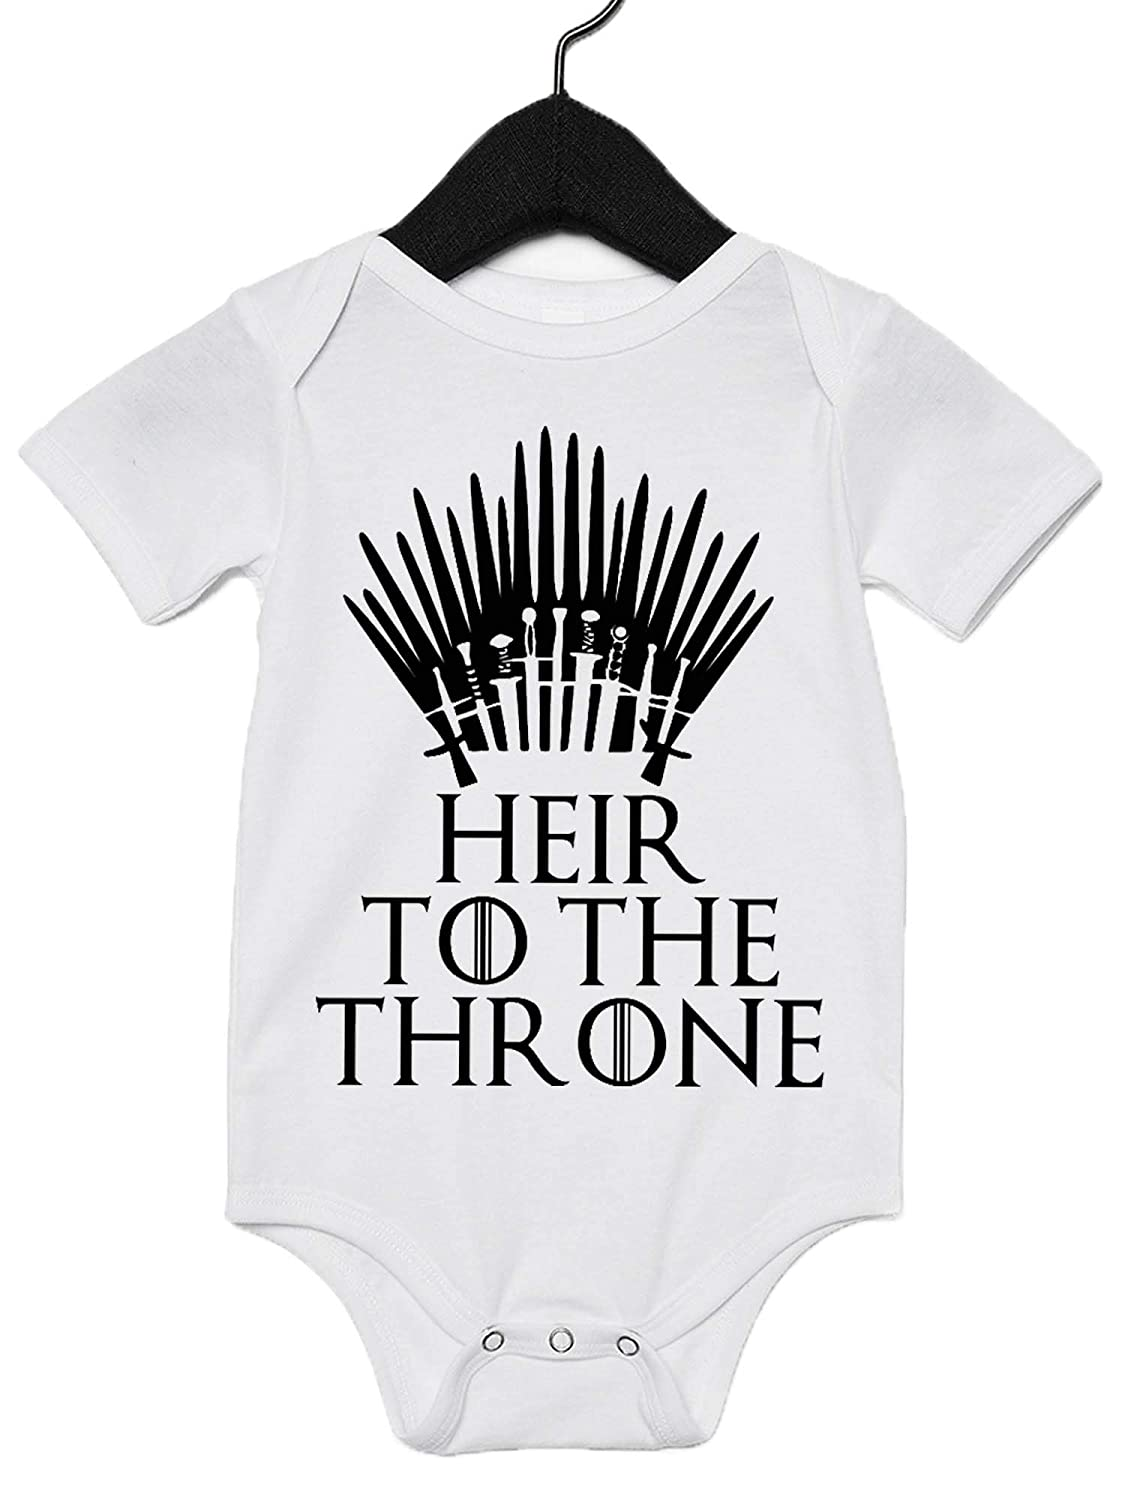 Game of Thrones Heir to the Throne Baby One Piece Onesie